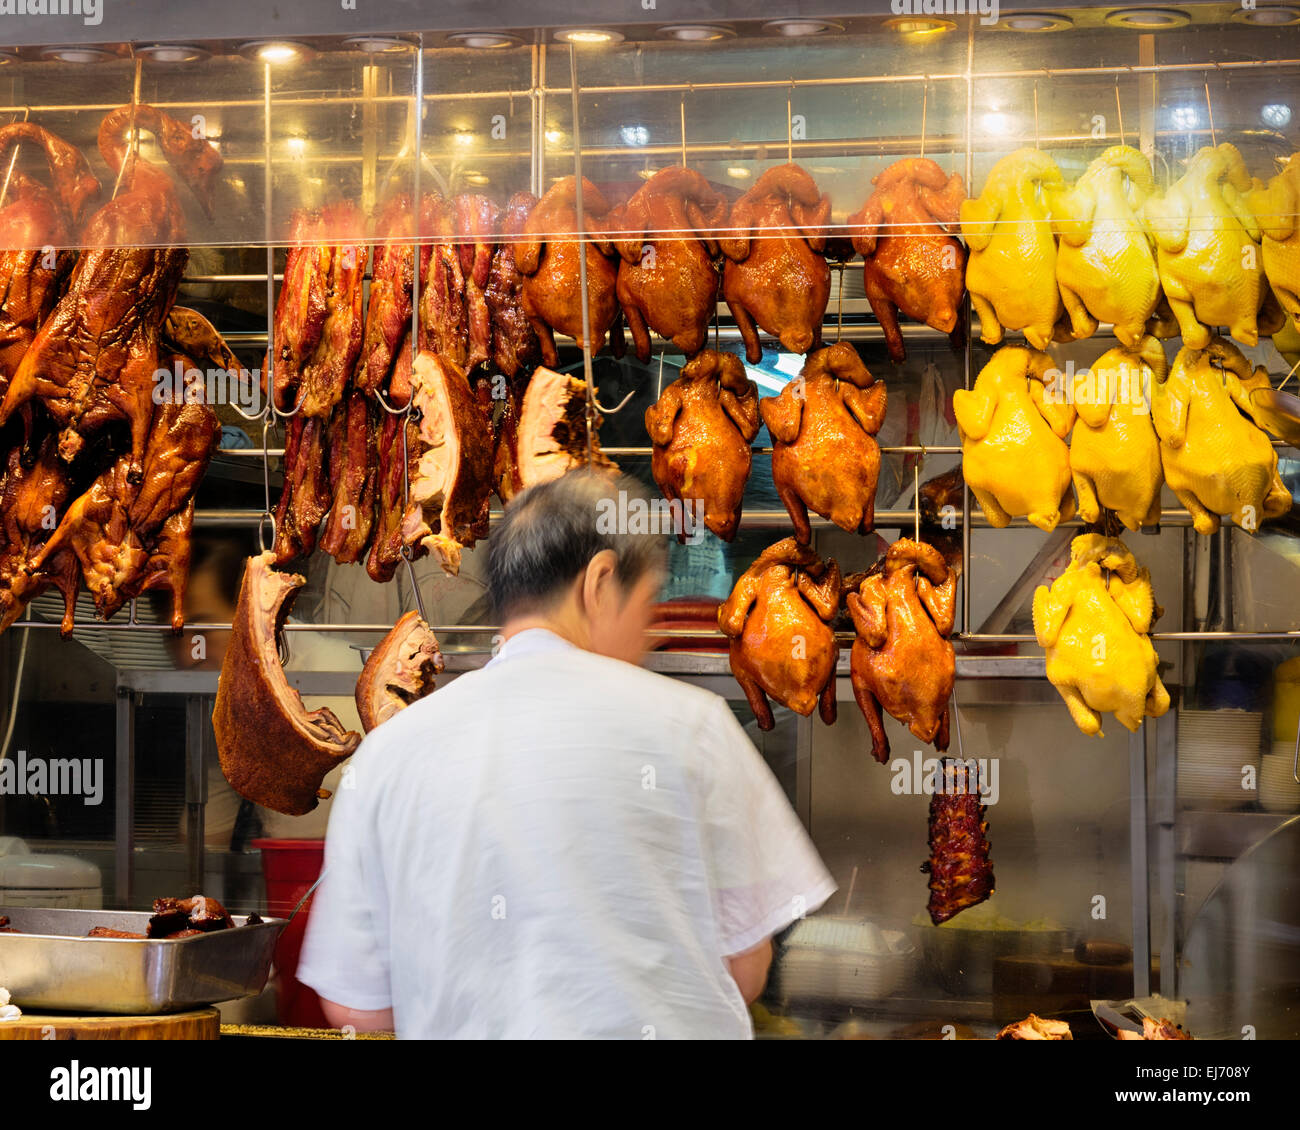 Roast cantonese ducks and another rosted meat in a windows display of a local eatery in Hong Kong. - Stock Image